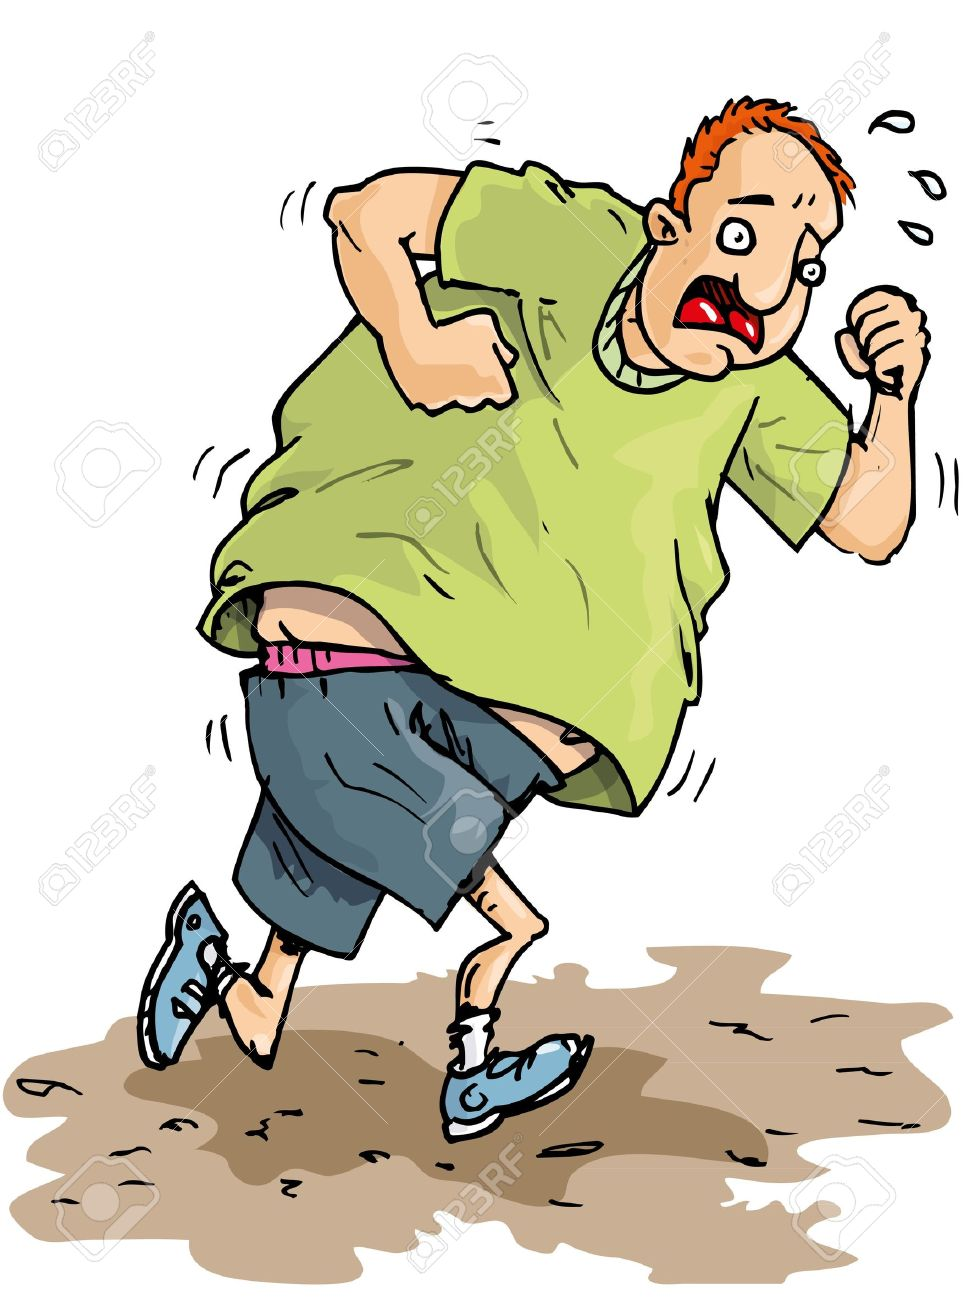 Cartoon of overweight runner trying to lose weight Stock Vector - 9439516